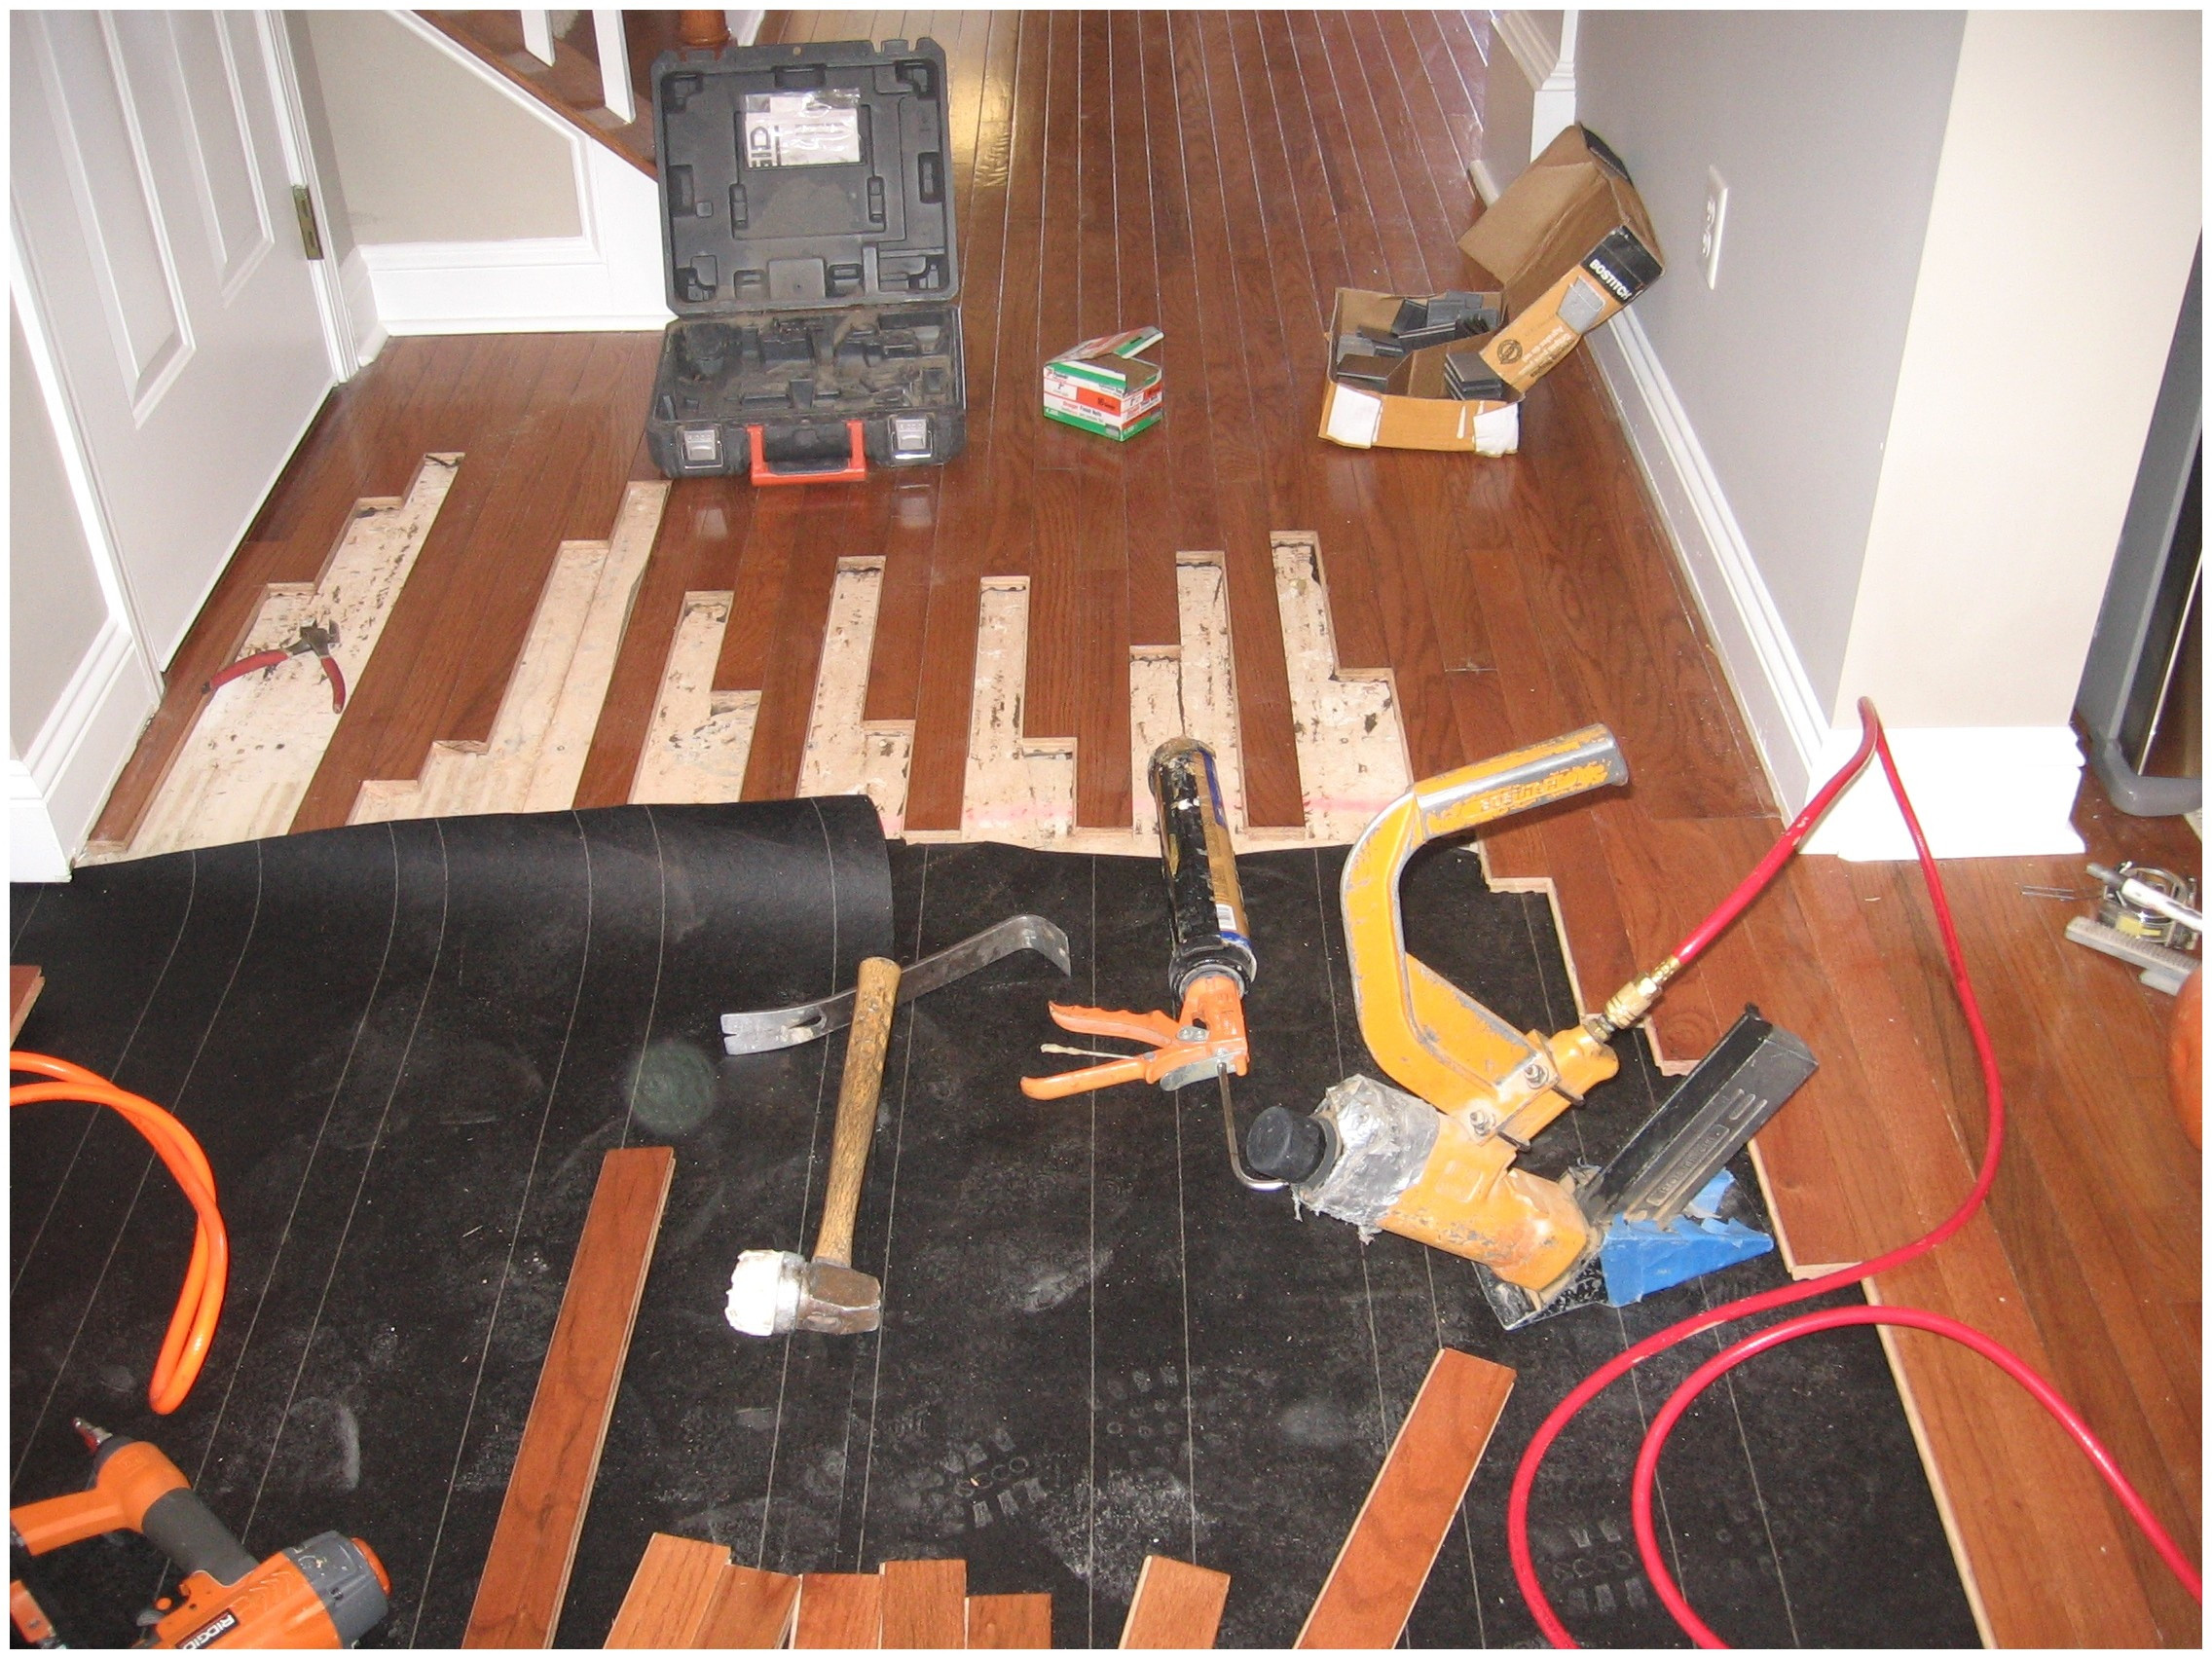 Installing Nail Down Hardwood Floors Of Best Way to Install Engineered Wood Flooring Over Concrete Hardwood Pertaining to Best Way to Install Engineered Wood Flooring Over Concrete Hardwood Floor Installation Cost to Install Engineered